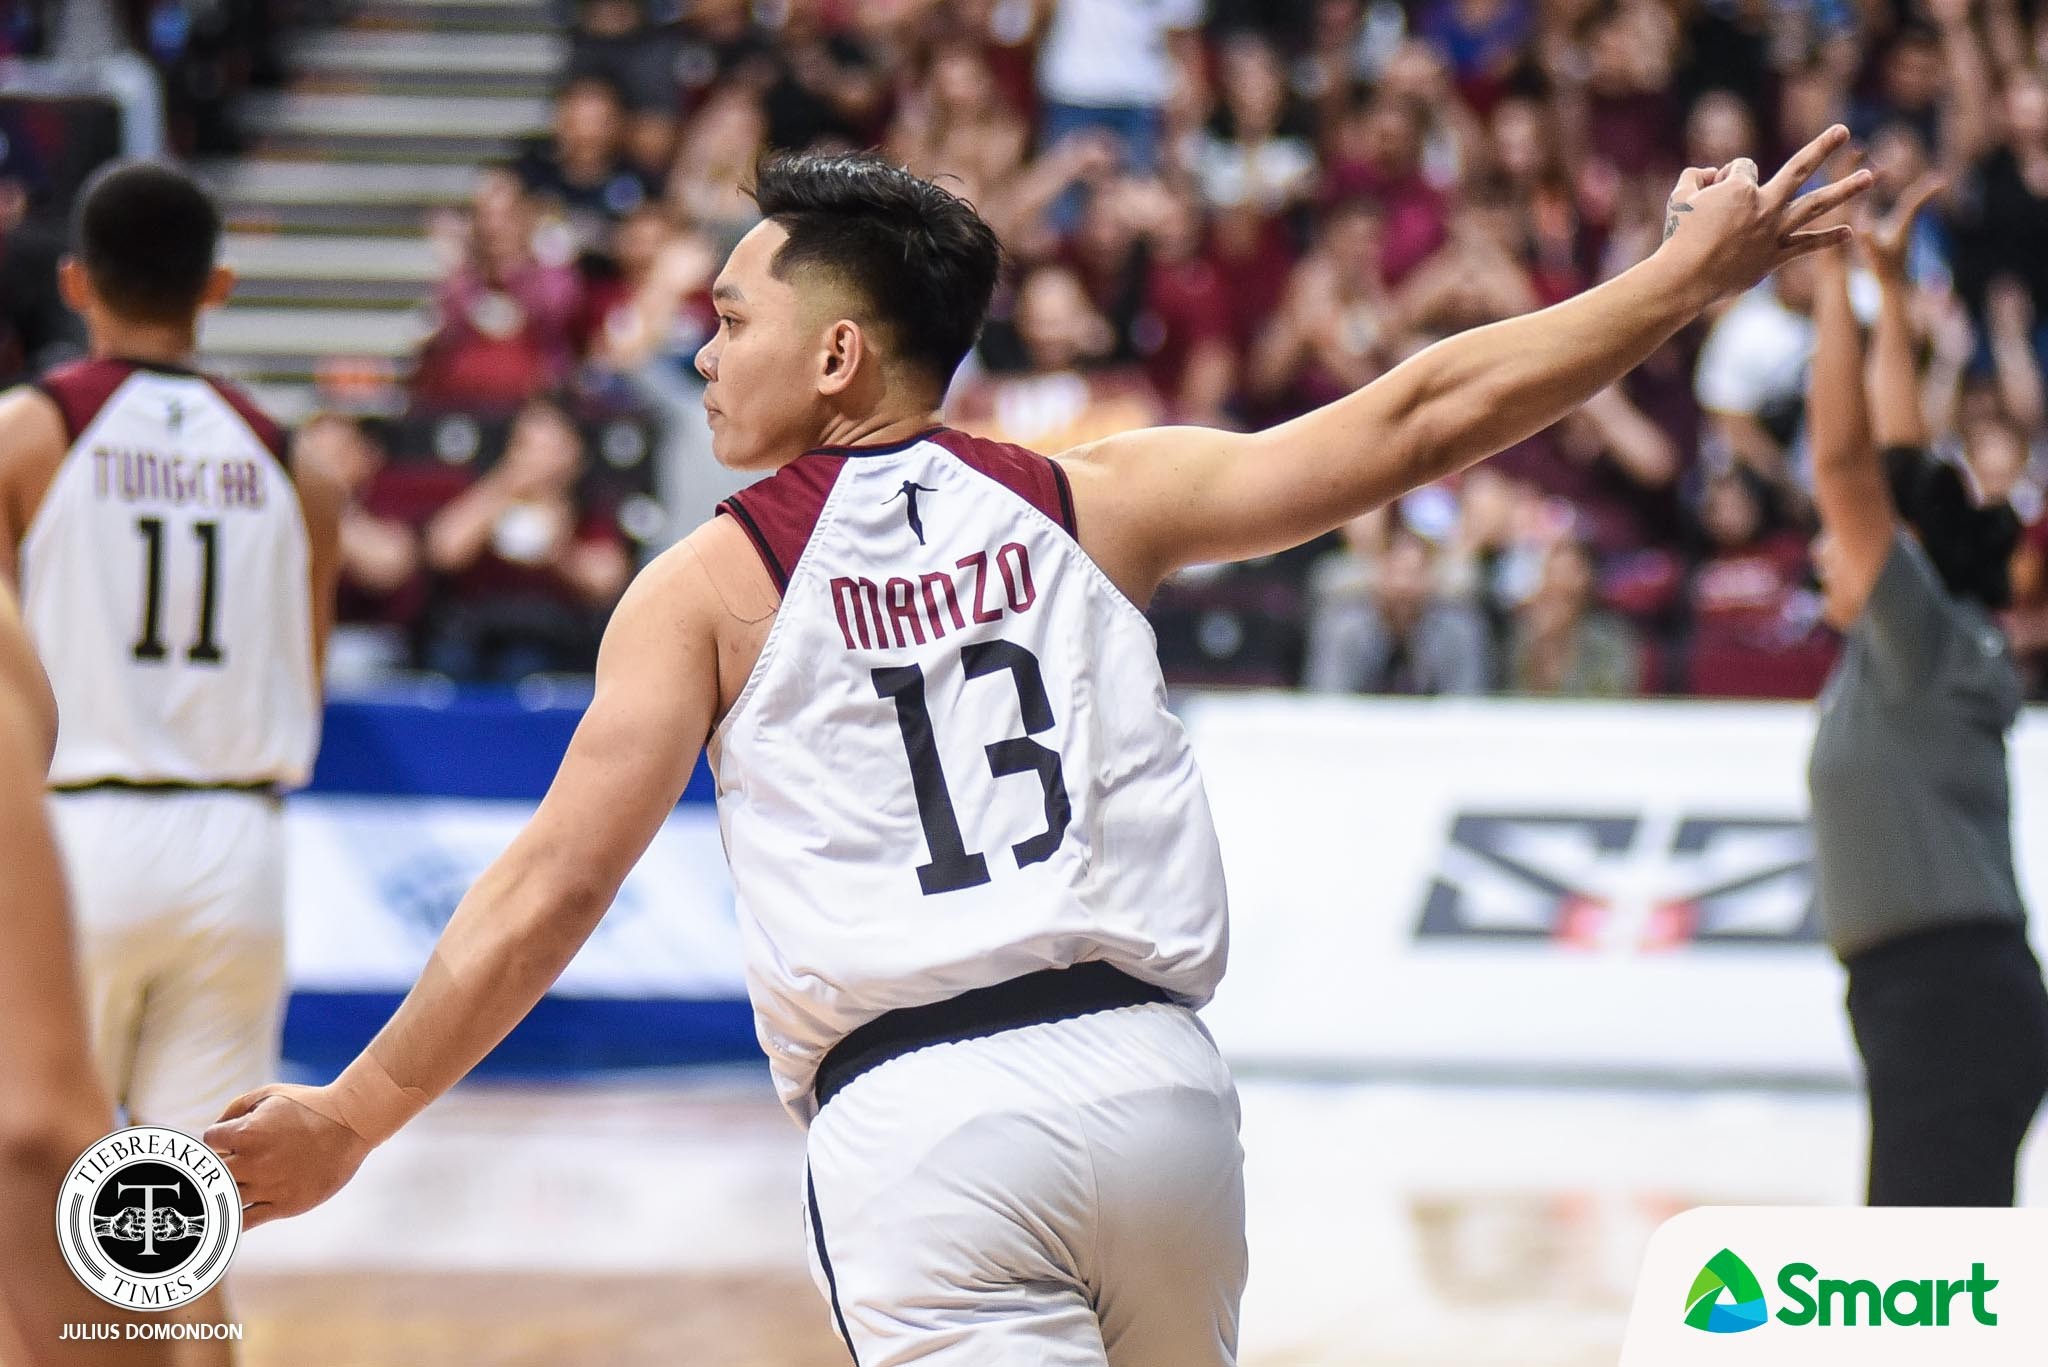 Tiebreaker Times Long talk with Paul Desiderio goes a long way for Jun Manzo Basketball News UAAP UP  UP Men's Basketball UAAP Season 82 Men's Basketball UAAP Season 82 Paul Desiderio Jun Manzo